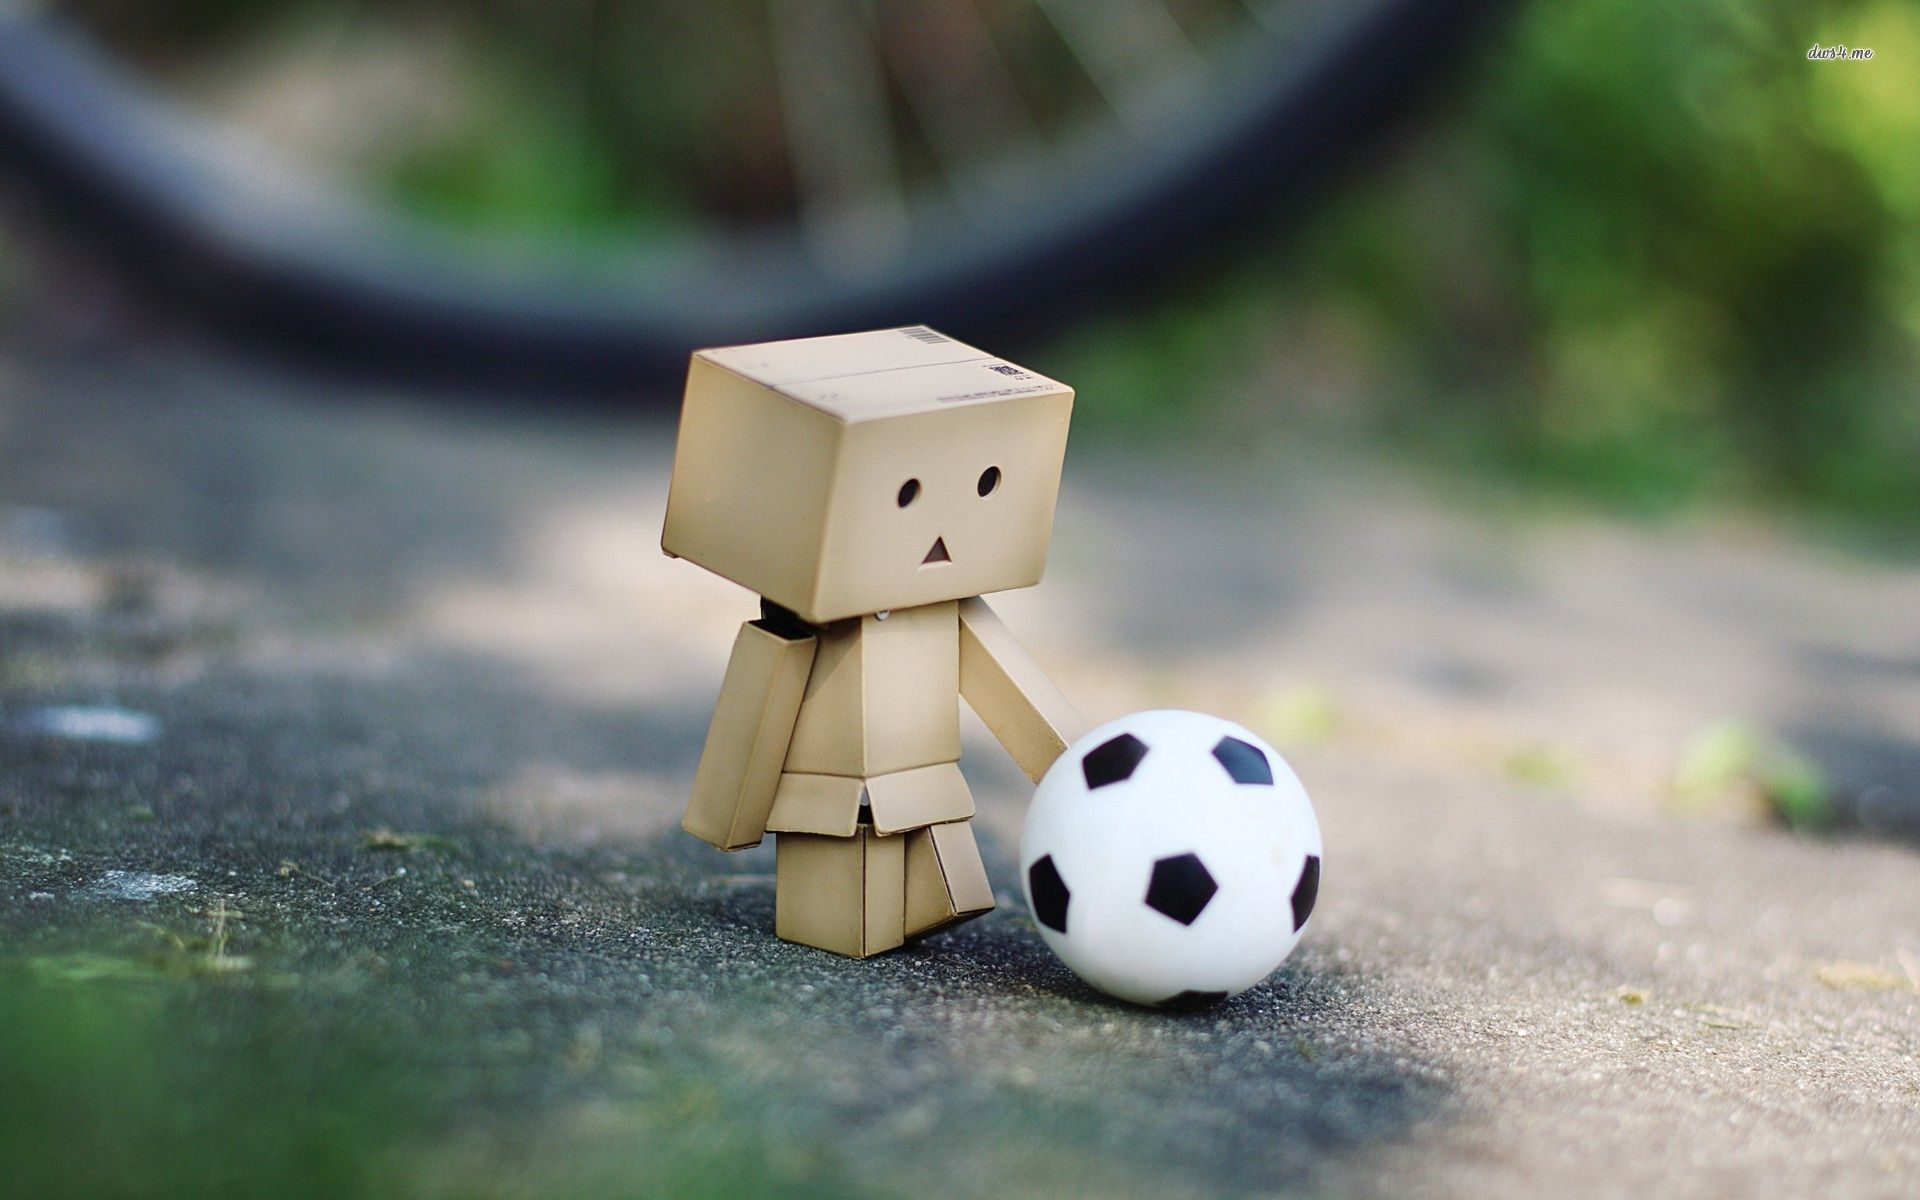 Football In The Rain Wallpaper Other Health Questions Pictures Fotos Danbo Rain Wallpapers Football Wallpaper